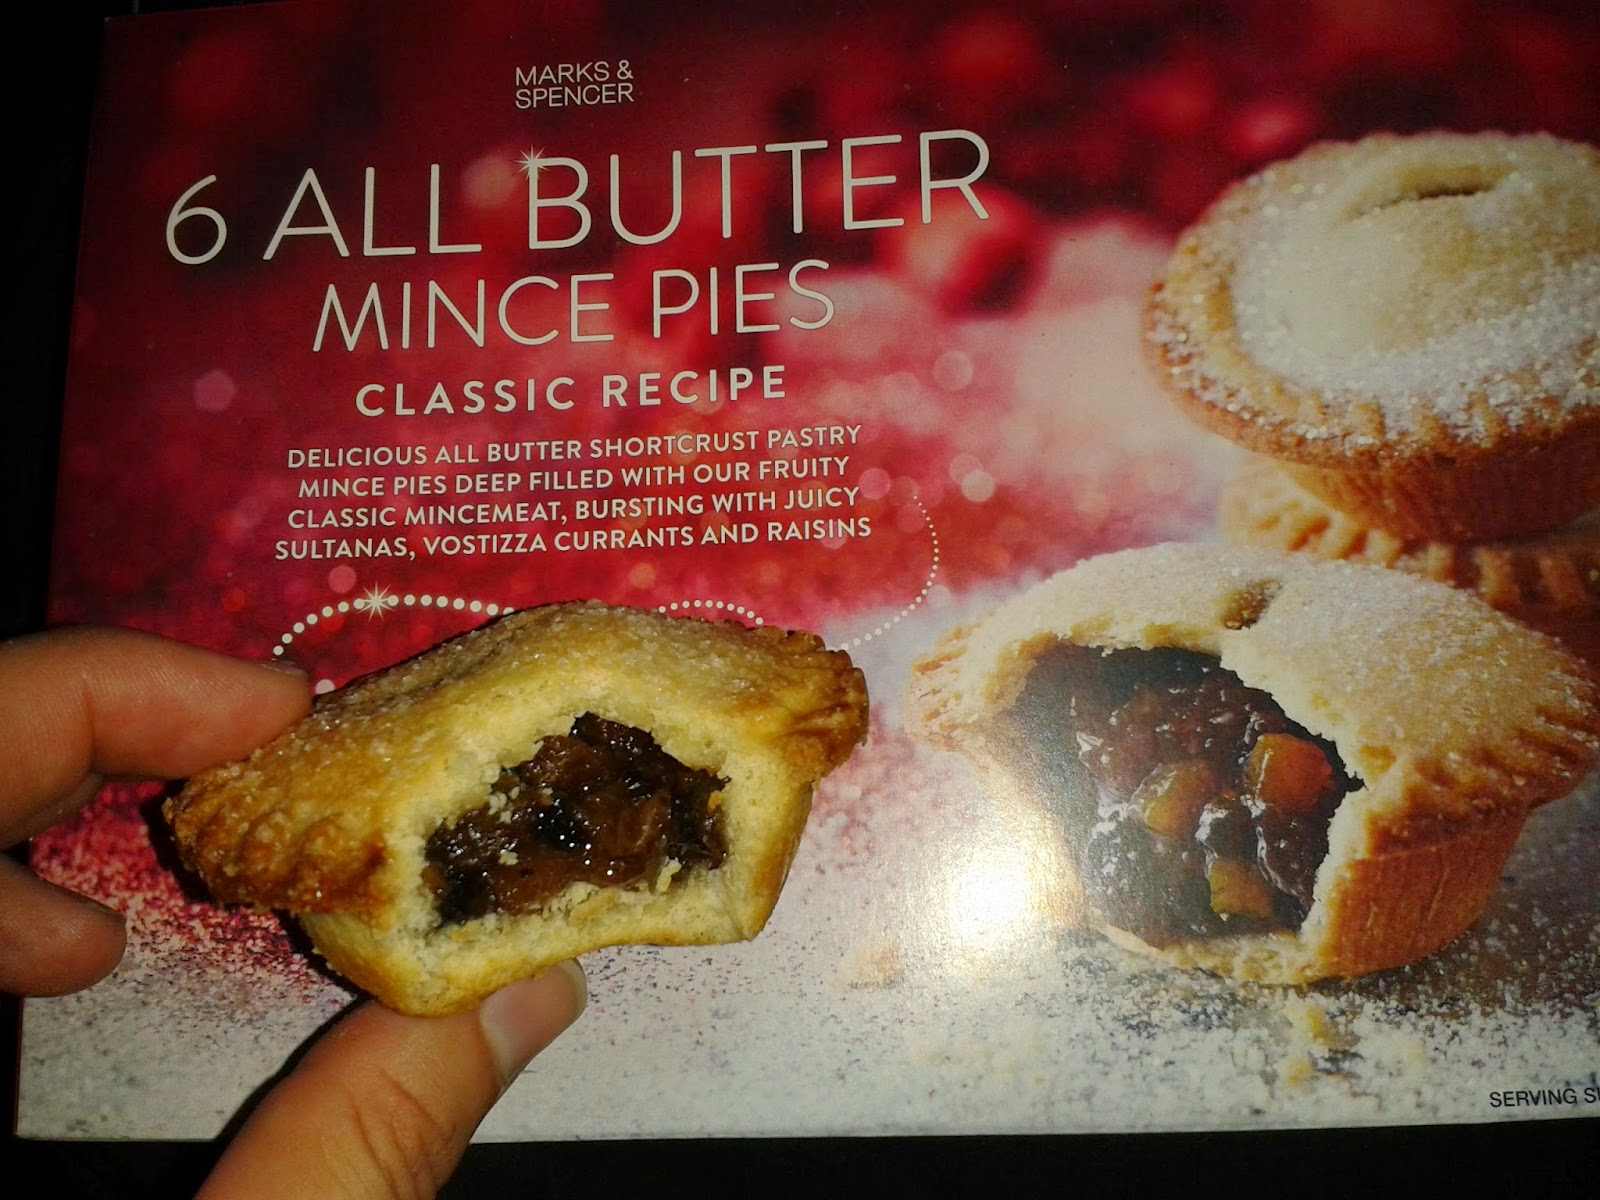 Marks and Spencer All Butter Classic Mince Pies Review